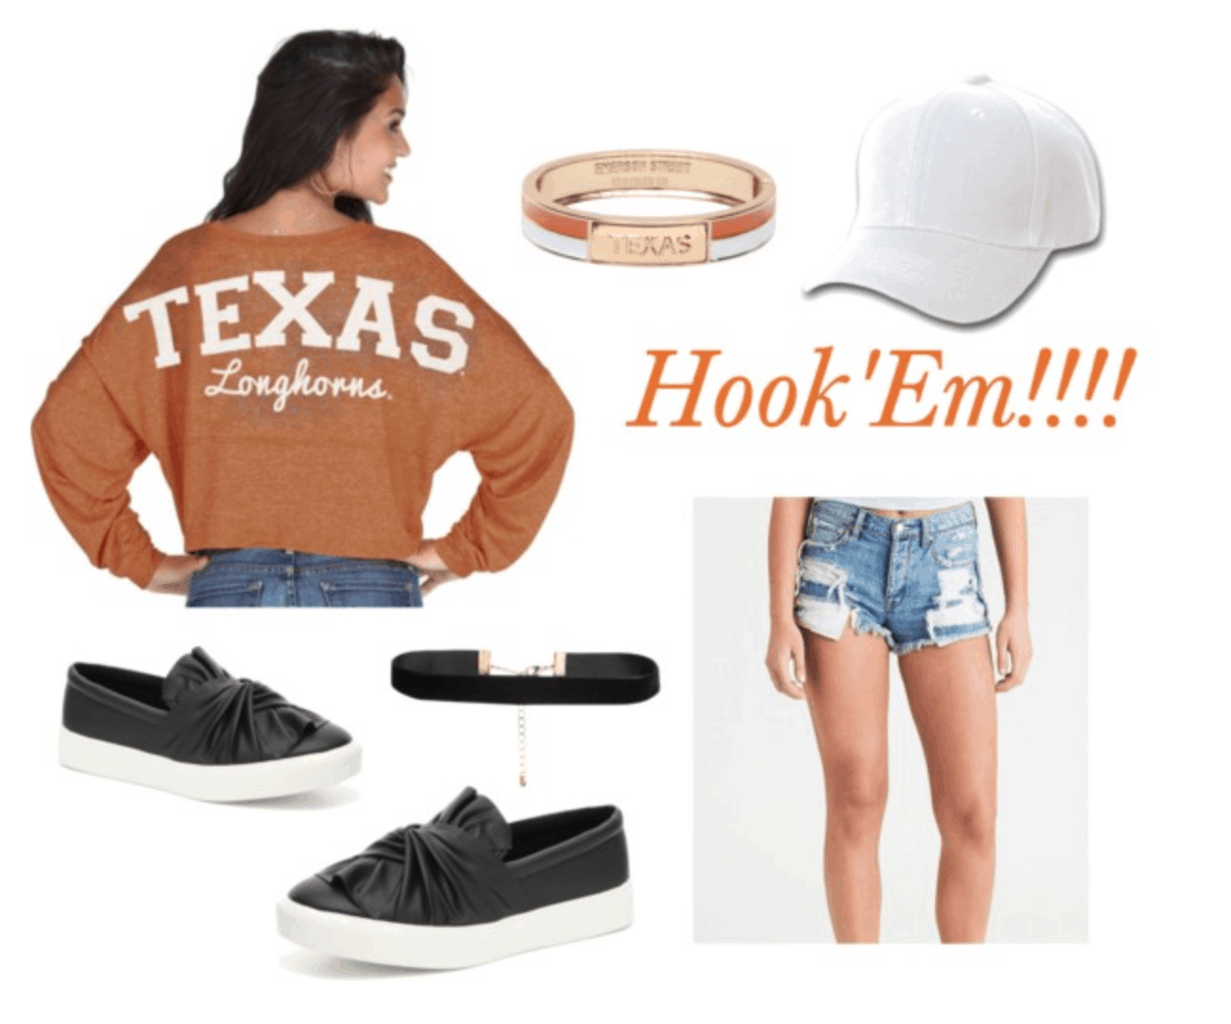 UT Austin tailgating outfit idea